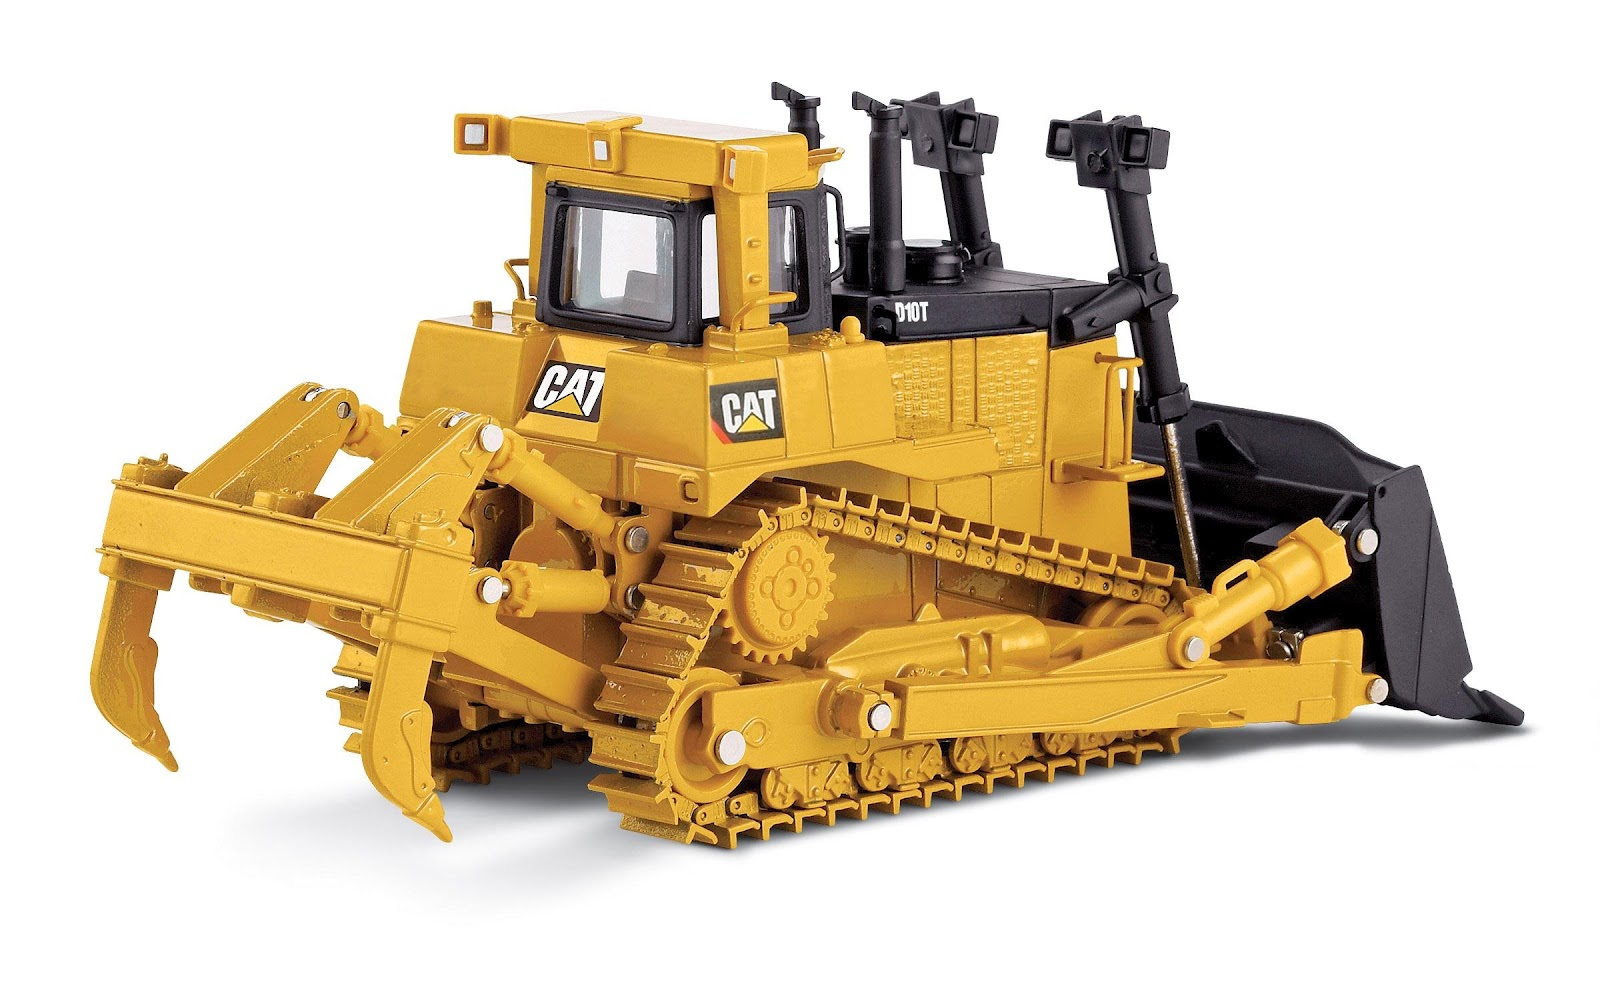 rc toy bulldozers with Collectioncdwn Caterpillar Equipment Wallpaper on Komatsu Intros D155axi 8 Rc besides Bruder Trucks For Kids likewise Bruder profi speelgoed grondverzet moreover Publix RC Semi Truck Remote Control Collectible Toy Truck With Trailer likewise El mas y el mejor9.